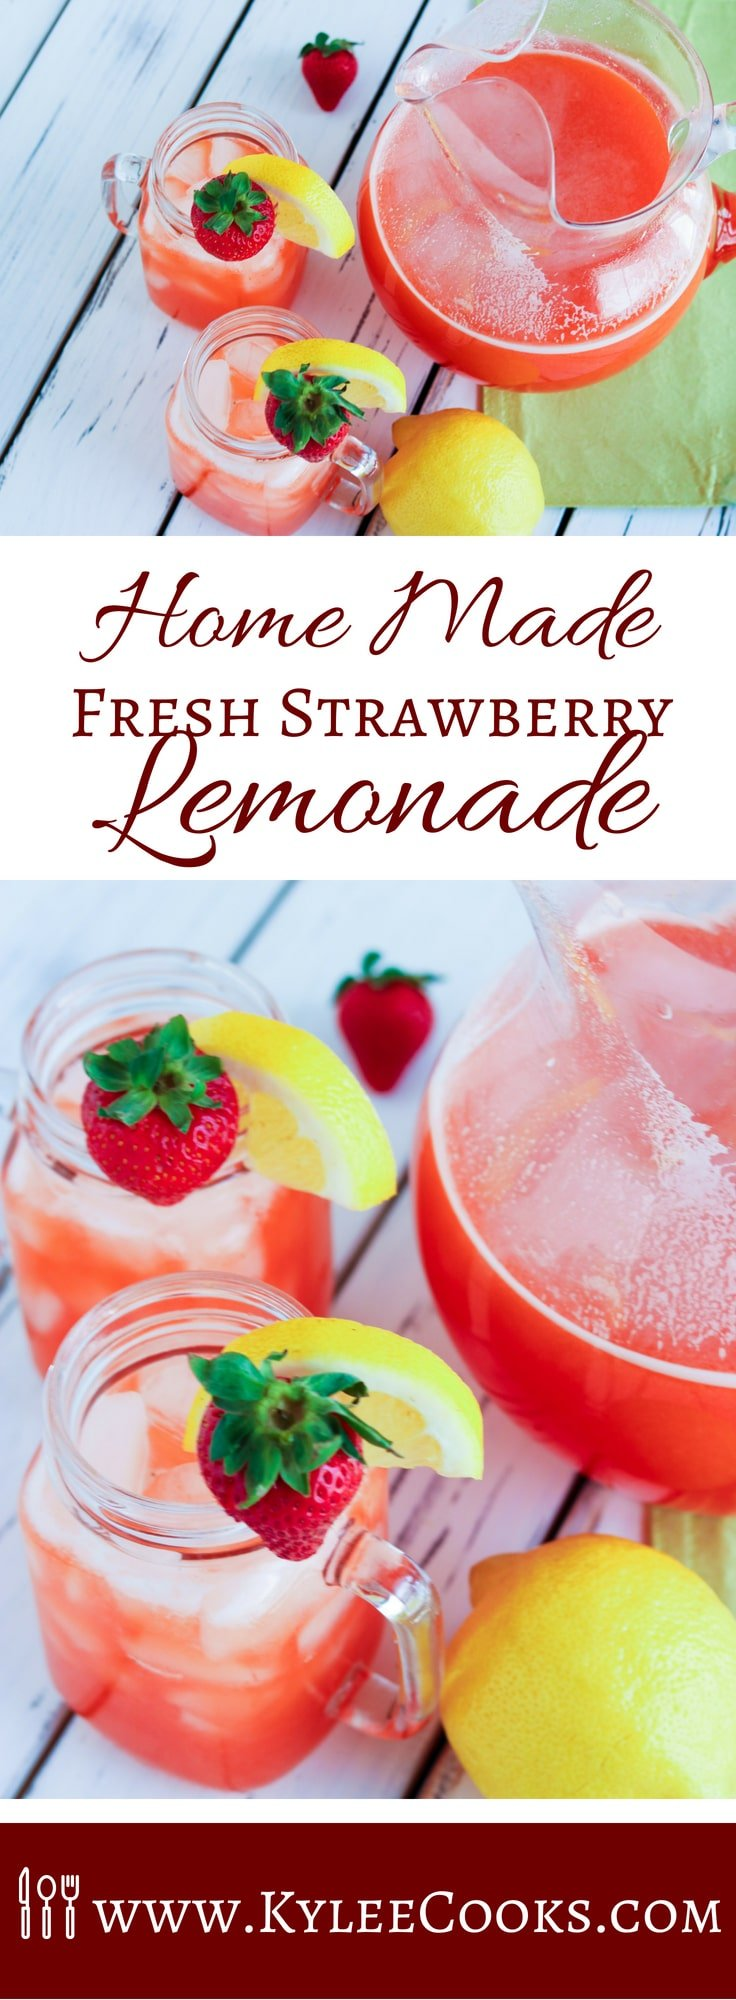 A refreshing summer cooler, this Home Made Fresh Strawberry Lemonade, made from fresh fruit, and sweetened with your choice of honey, maple syrup or sugar! This is a delicious way to hydrate! #strawberry #lemonade #summerdrinks